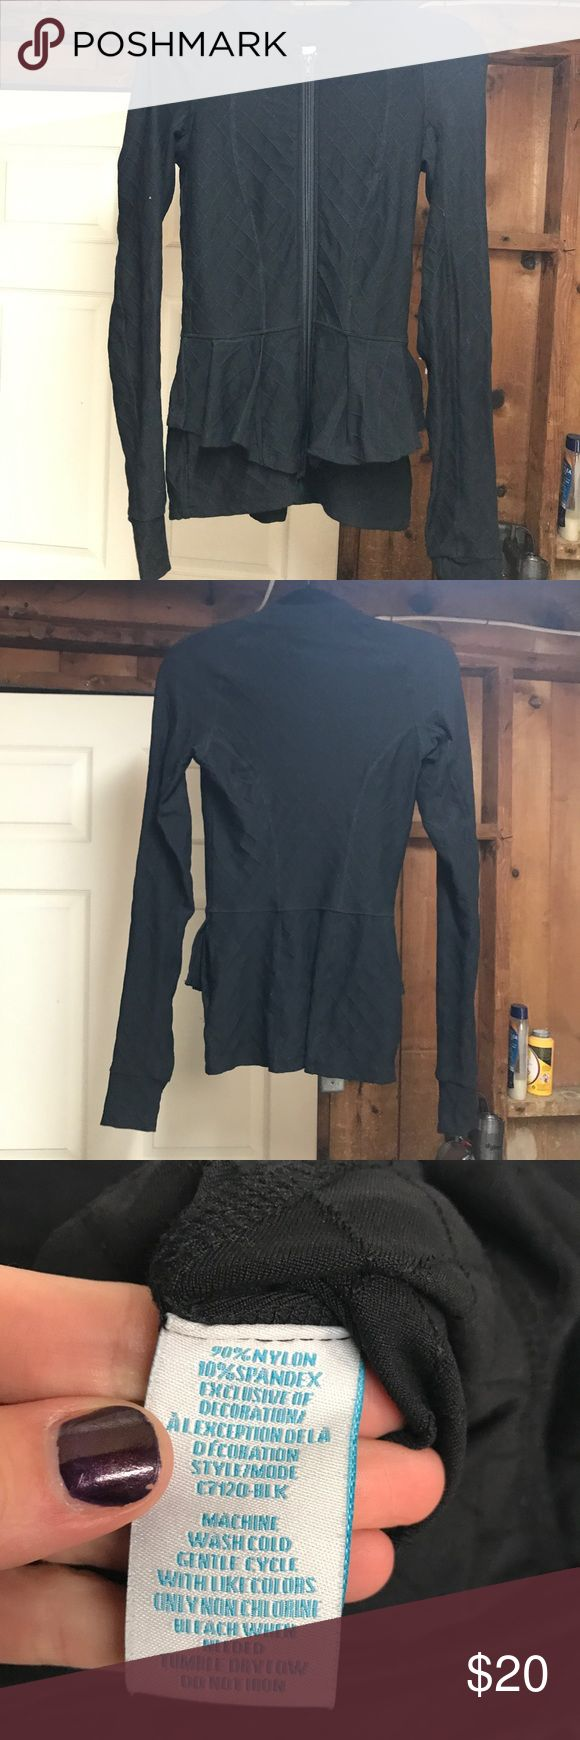 NWOT Charlie jade jacket Front peplum. Slim fit. Perfect condition Jackets & Coats